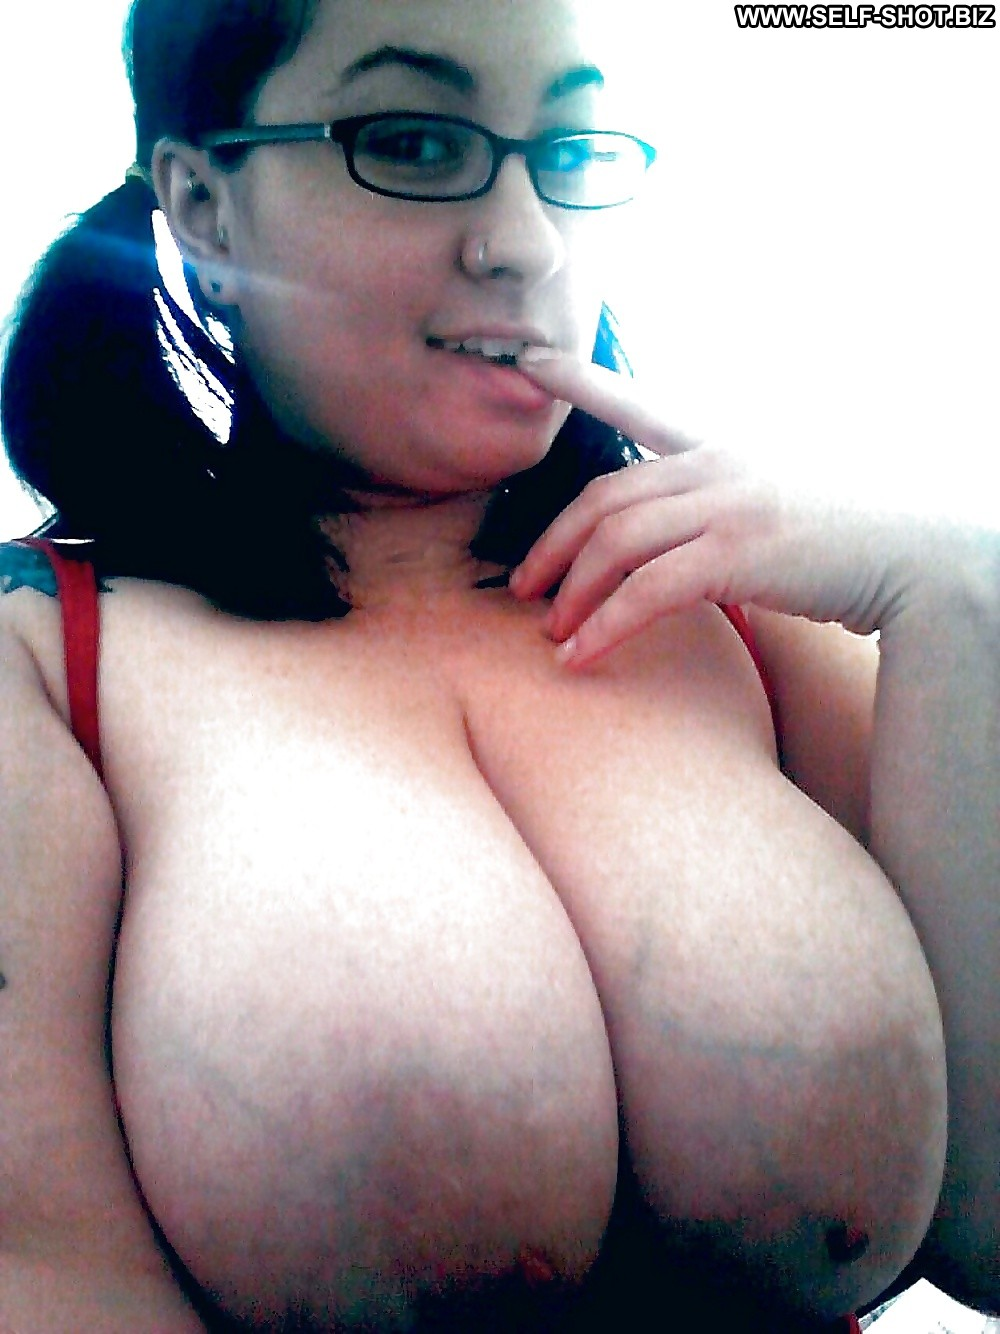 Delores Private Pictures Self Shot Hot Amateur Bbw Boobs -4429